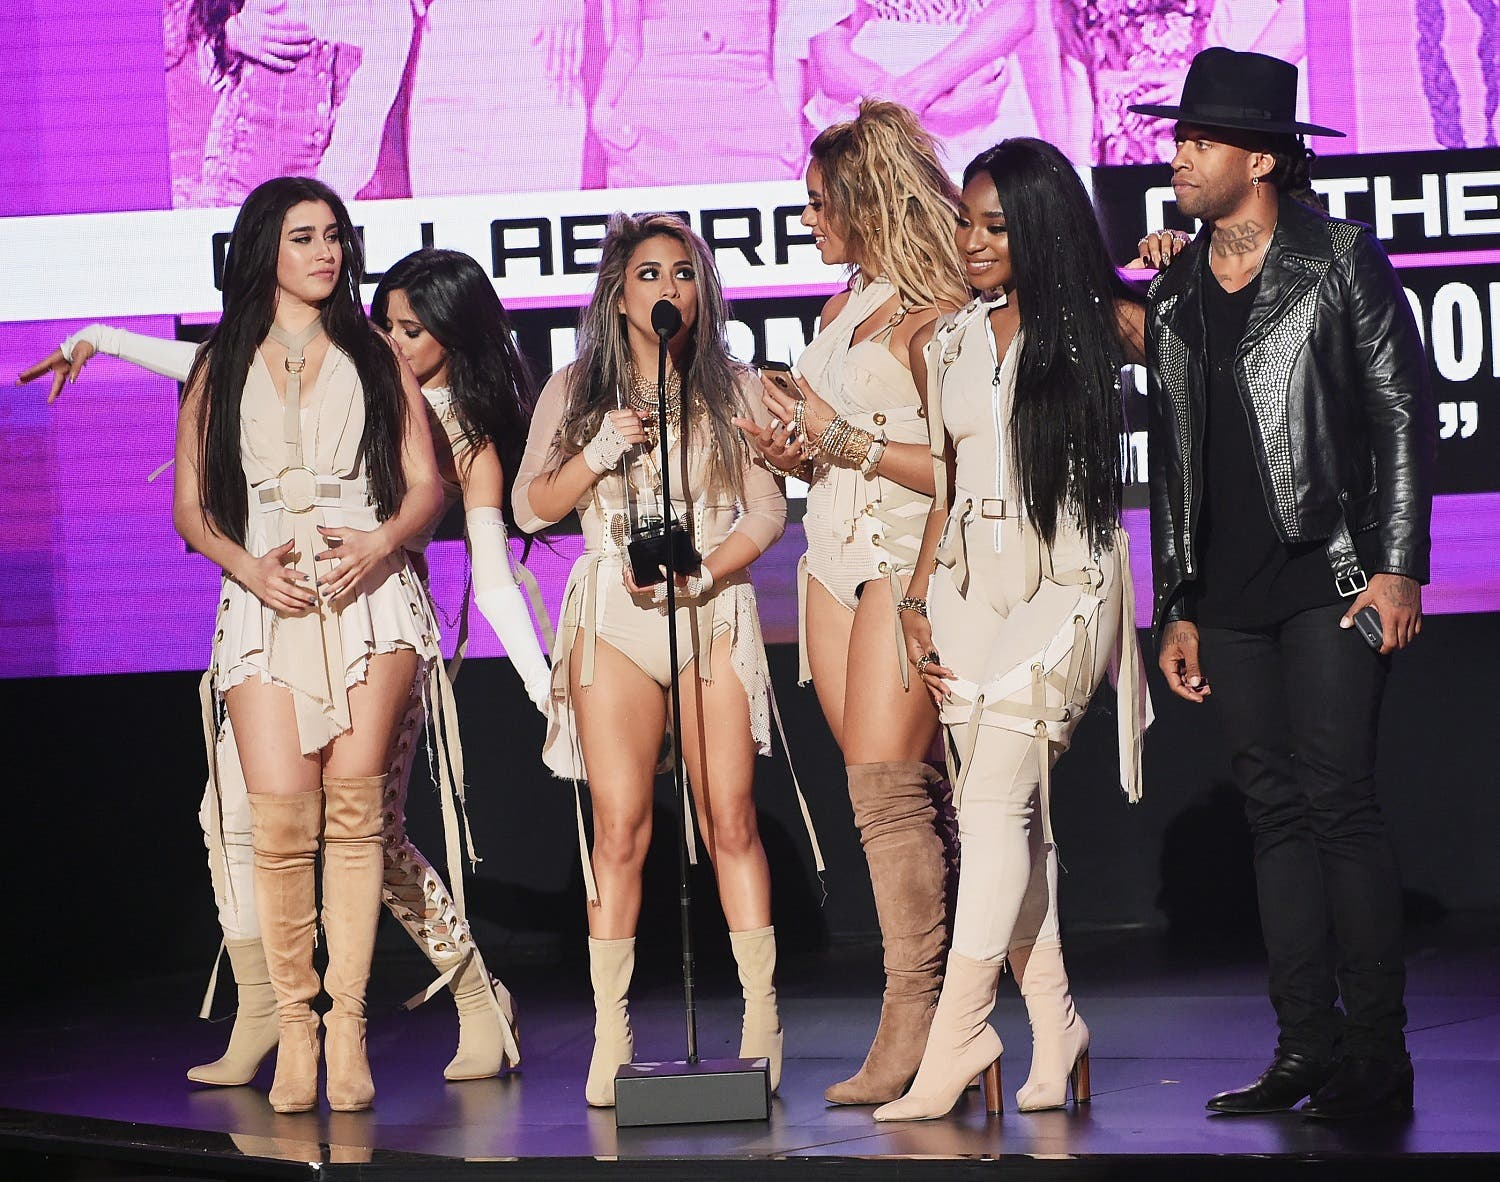 American Music Awards at Microsoft Theater on November 20, 2016 in Los Angeles, California. Kevin Winter/Getty Images/AFP